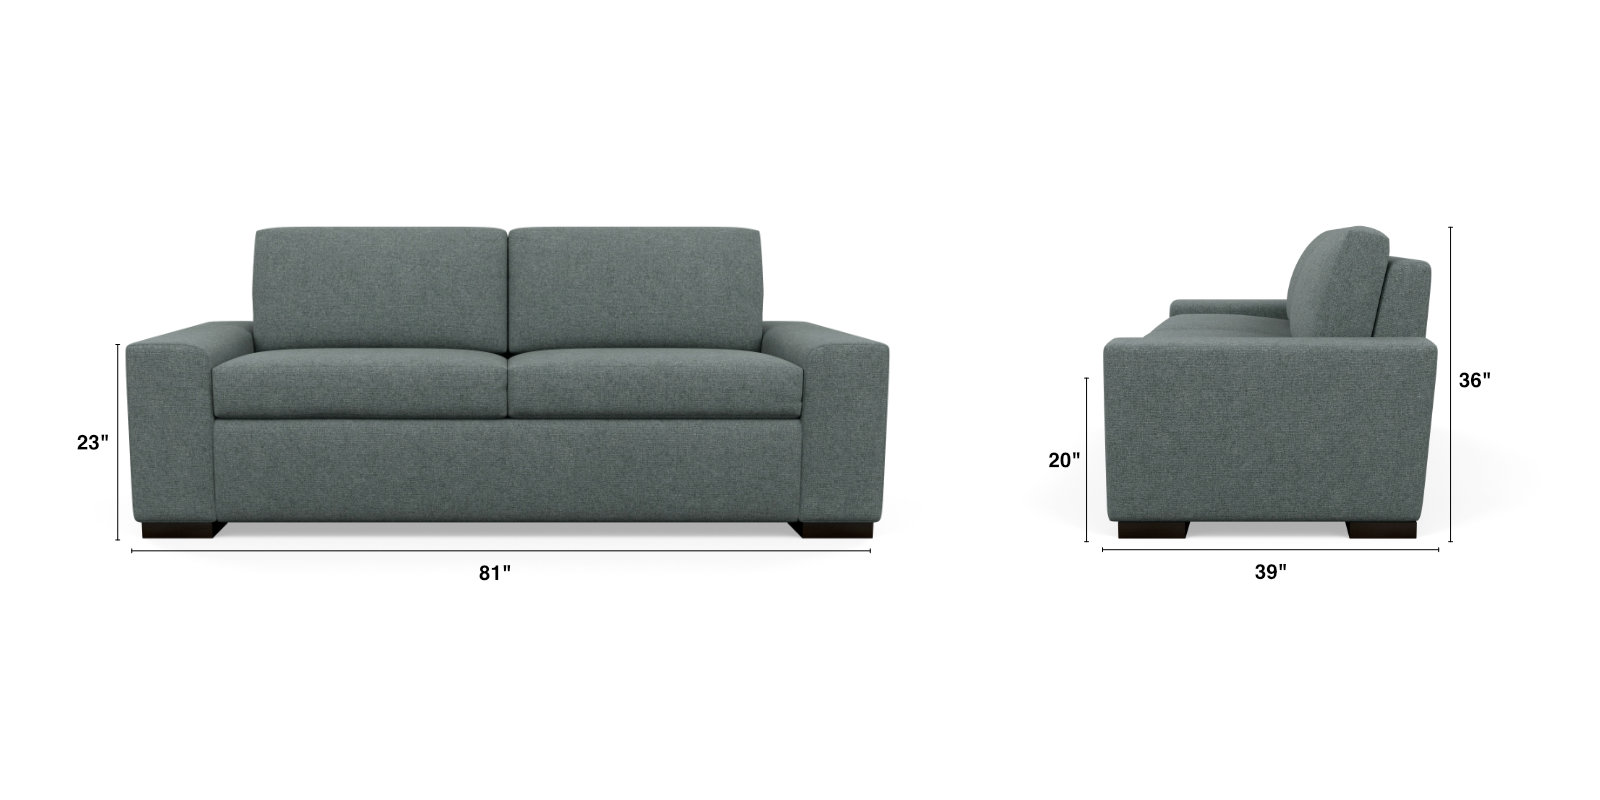 Olson Sofa Sleeper Dimensions